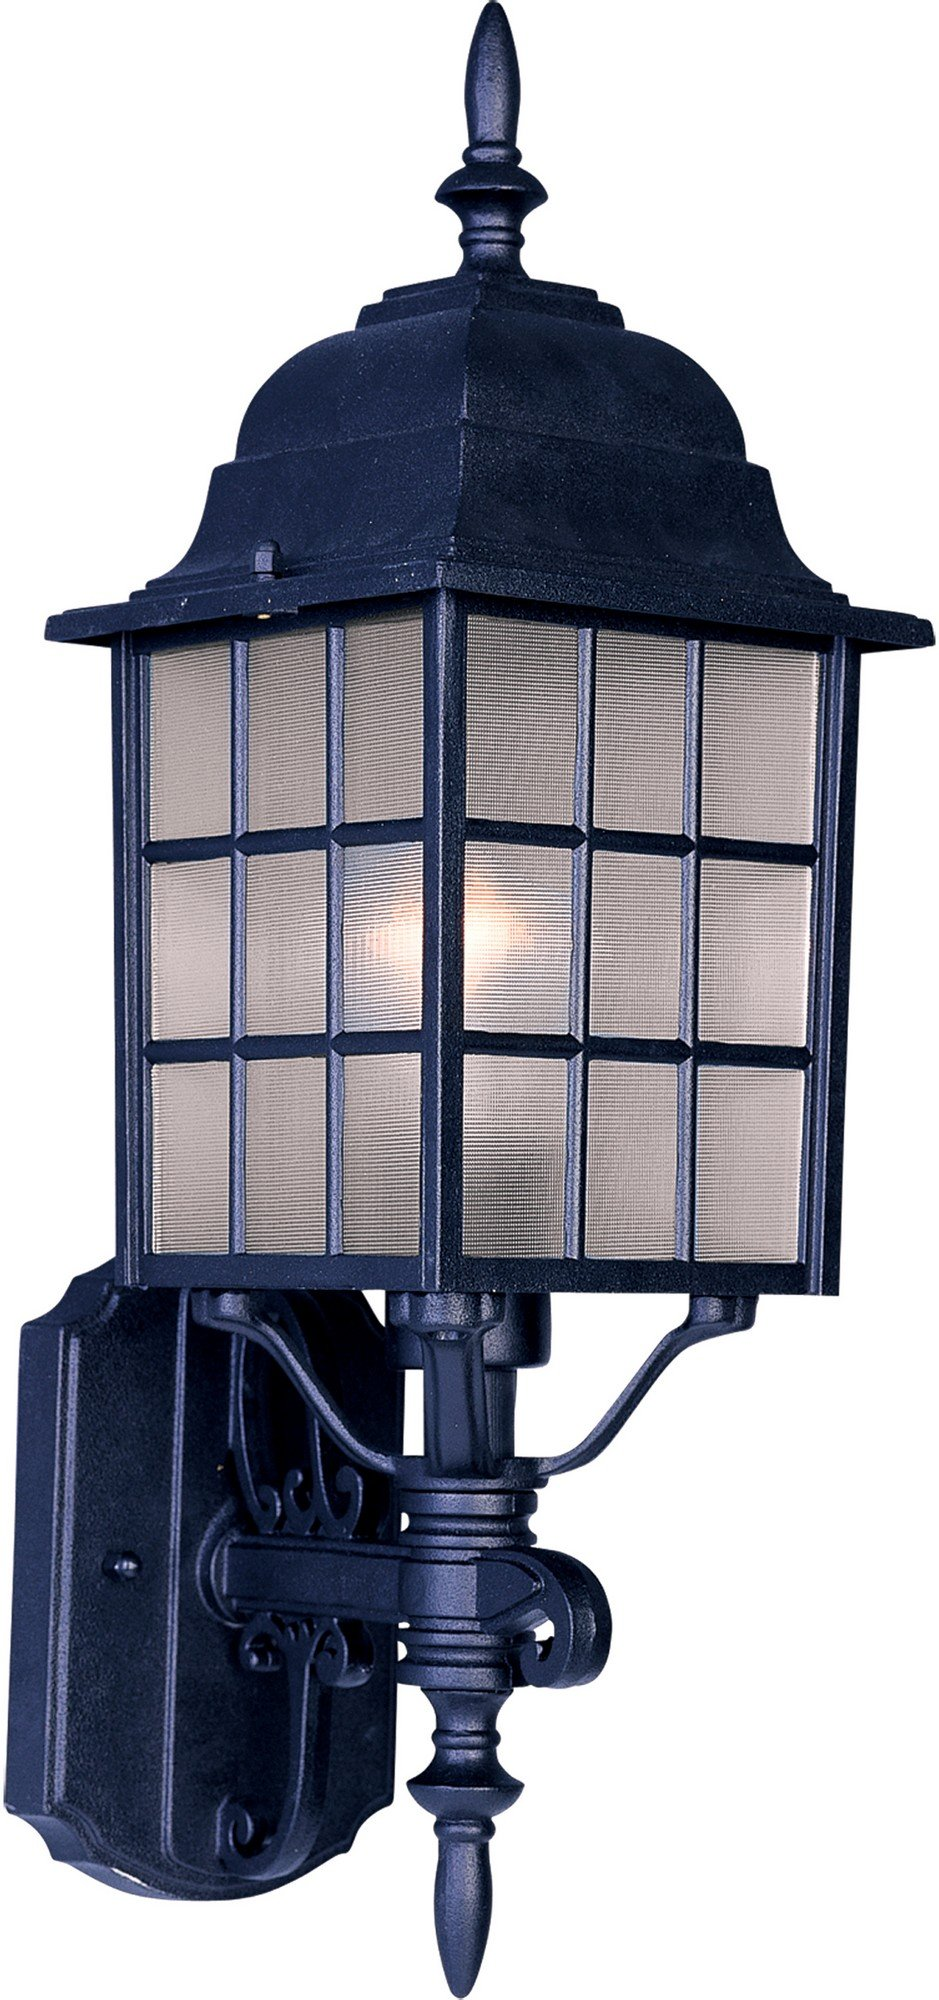 Maxim 1050BK North Church 1-Light Outdoor Wall Lantern, Black Finish, Clear Glass, MB Incandescent Incandescent Bulb , 100W Max., Dry Safety Rating, Standard Dimmable, Glass Shade Material, 5750 Rated Lumens